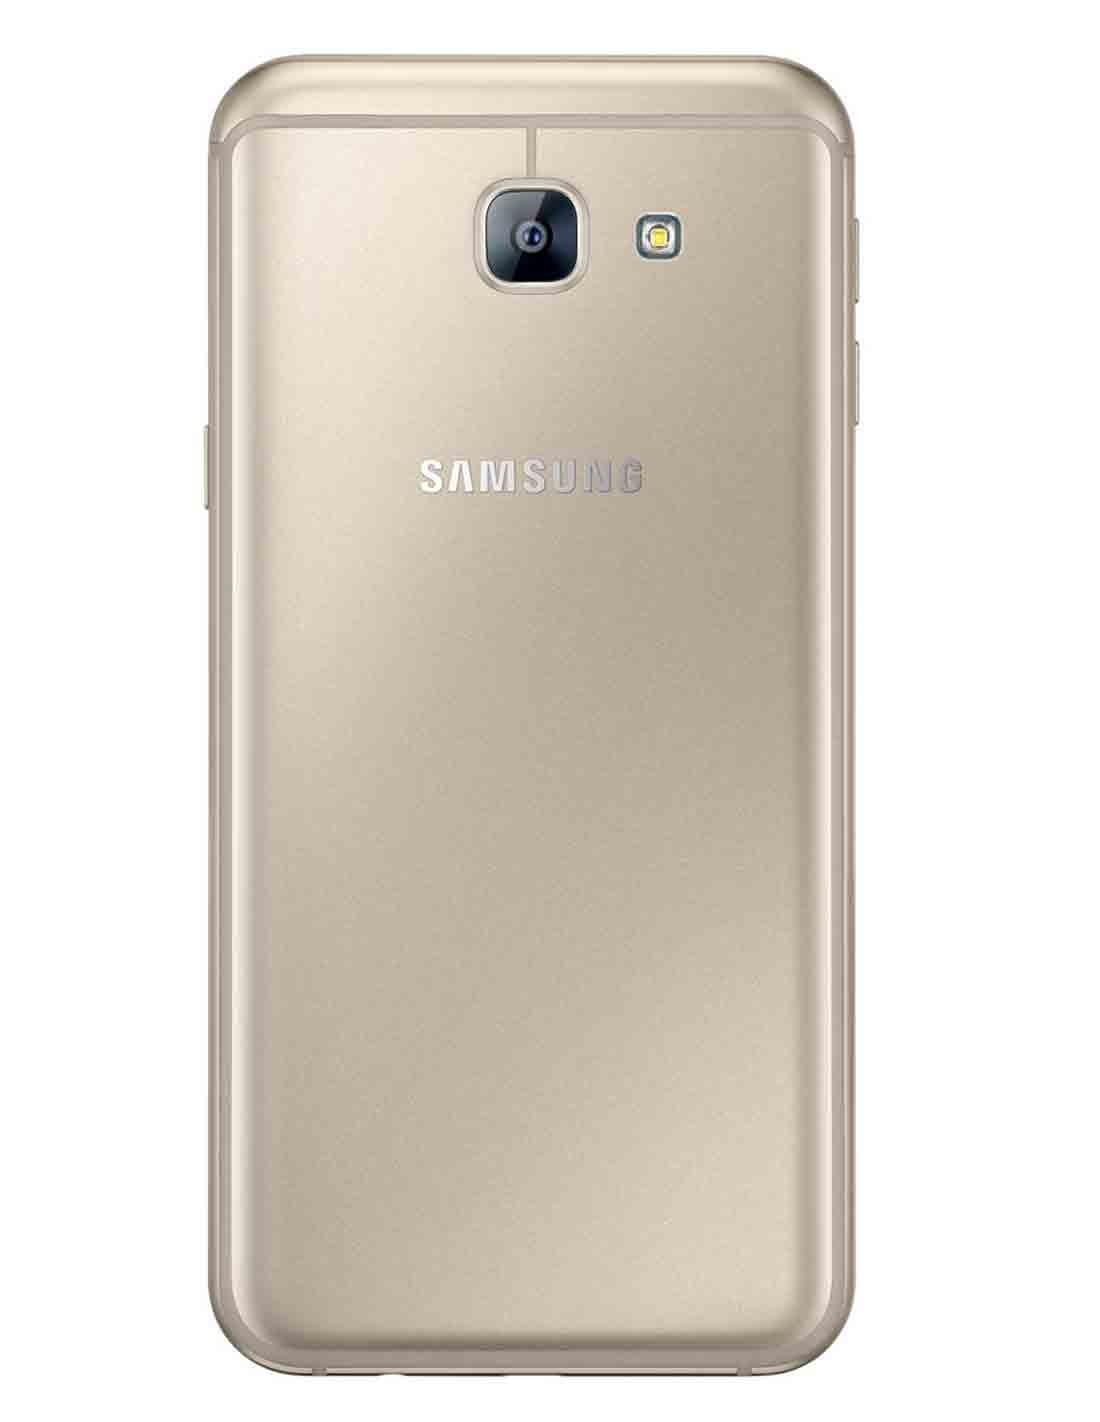 Samsung Galaxy A8 (2016) Images and Photos